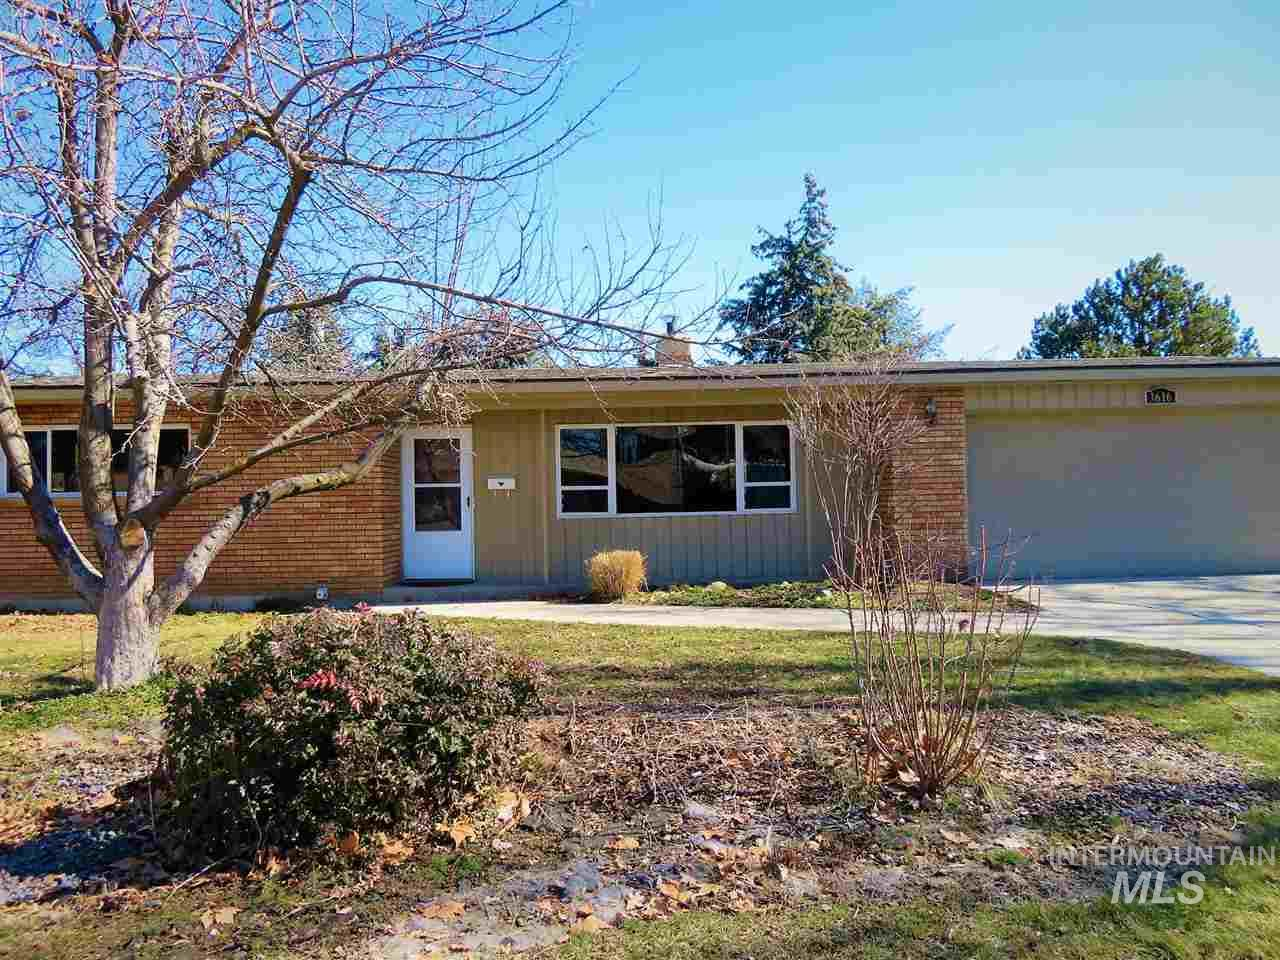 3616 N Cabarton Ln, Boise, Idaho 83704, 3 Bedrooms, 2 Bathrooms, Rental For Rent, Price $1,500, 98717610